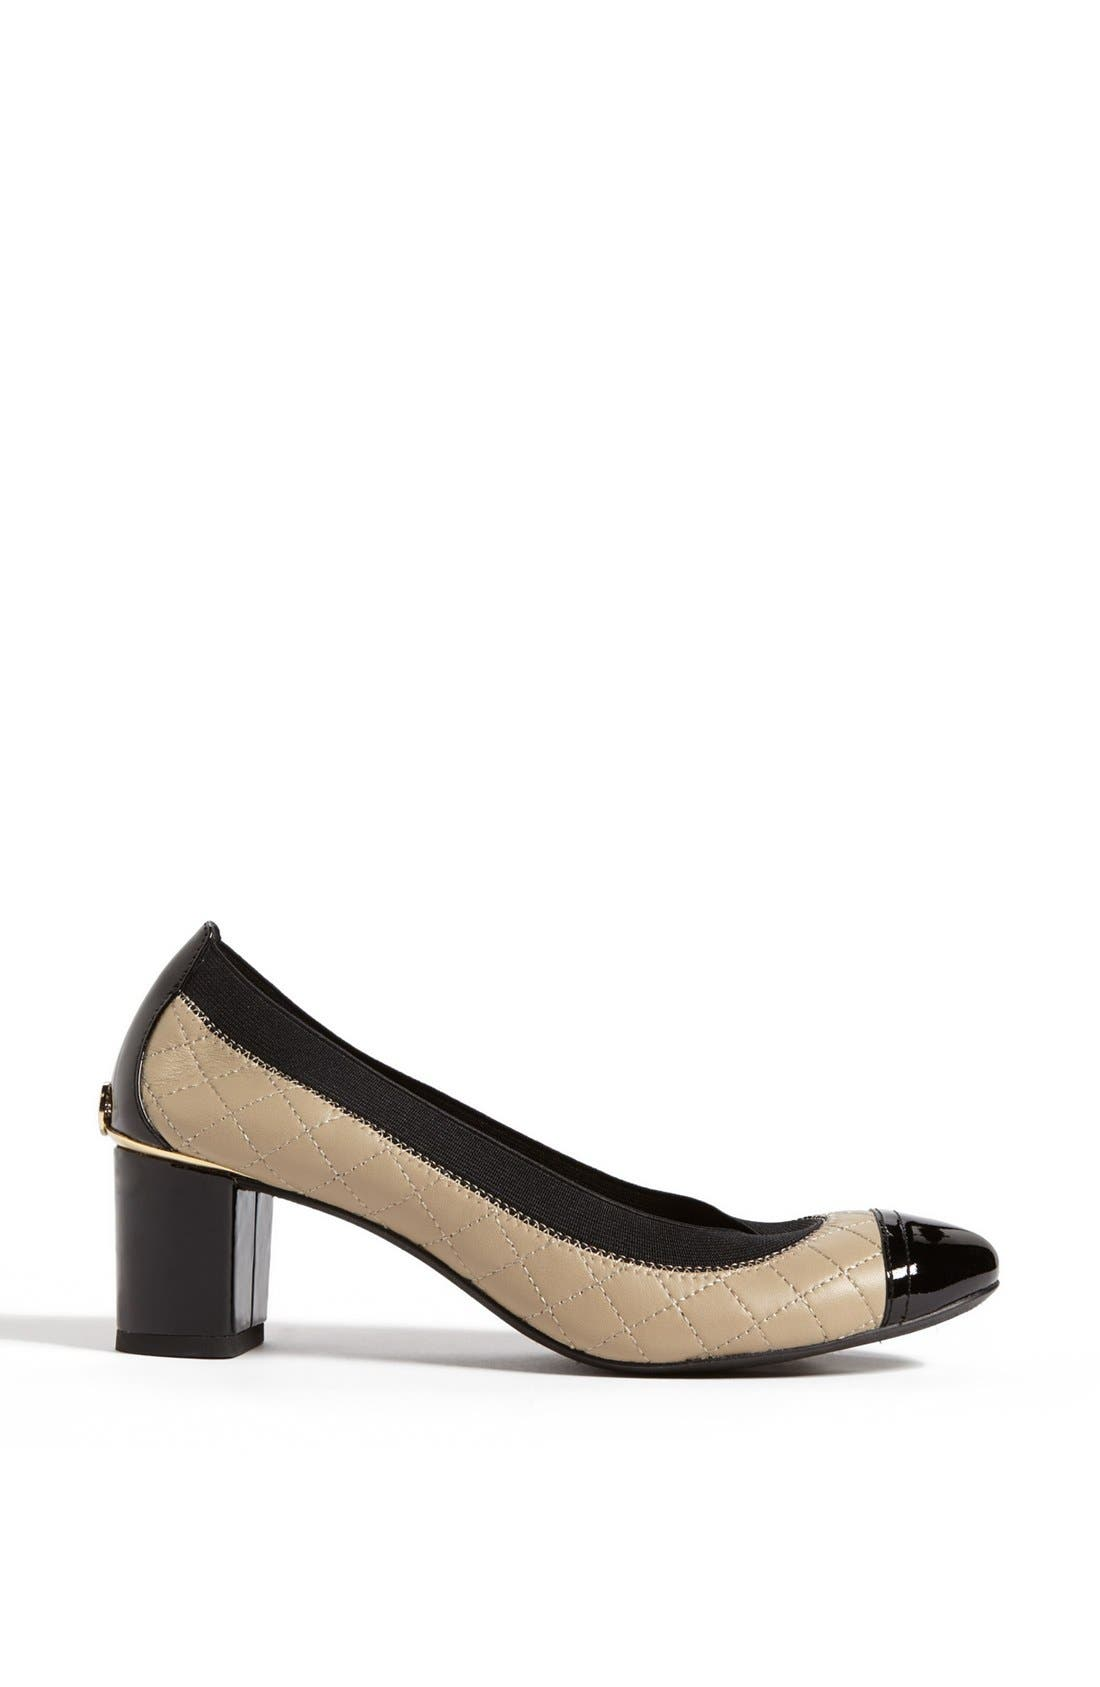 Alternate Image 4  - Tory Burch 'Carrie' Quilted Leather Cap Toe Pump